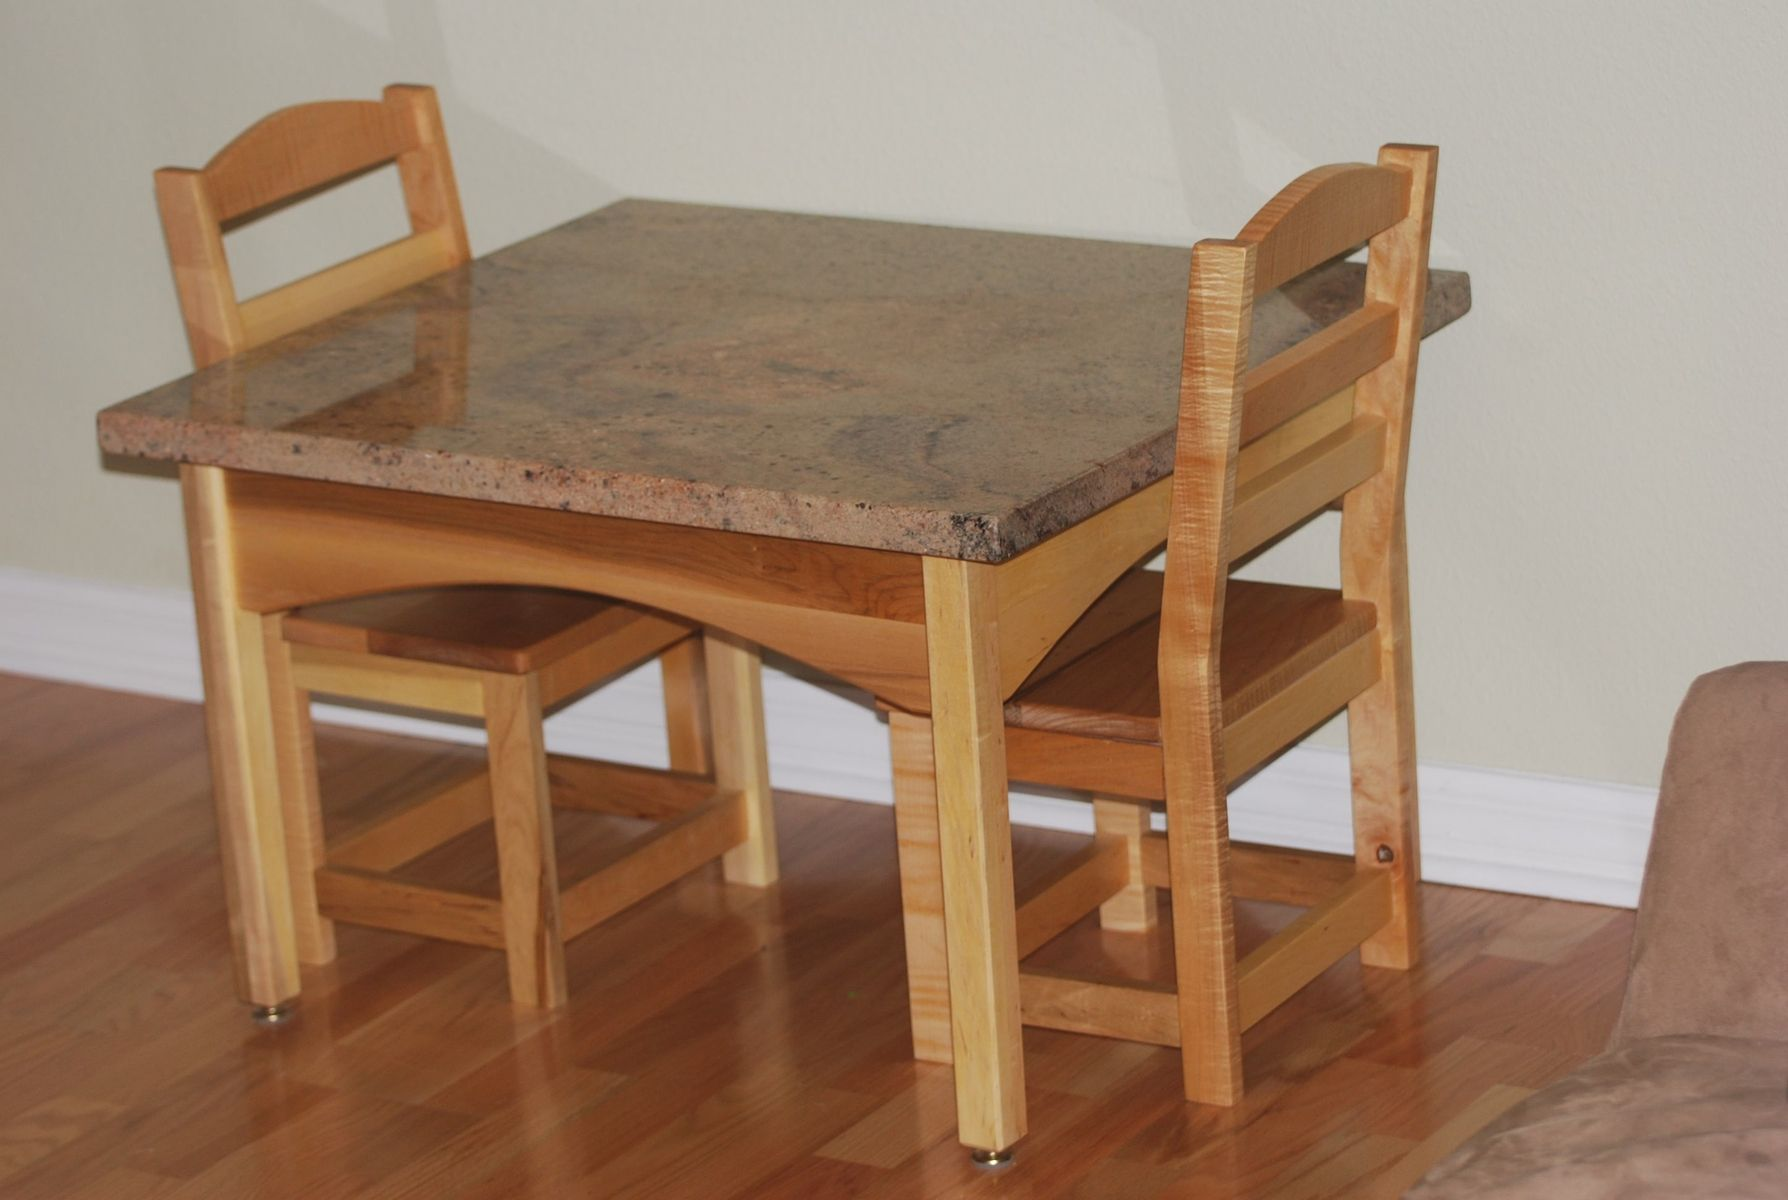 Hand crafted childrens table and chair set by memphis woodwork 39 s Wooden childrens furniture